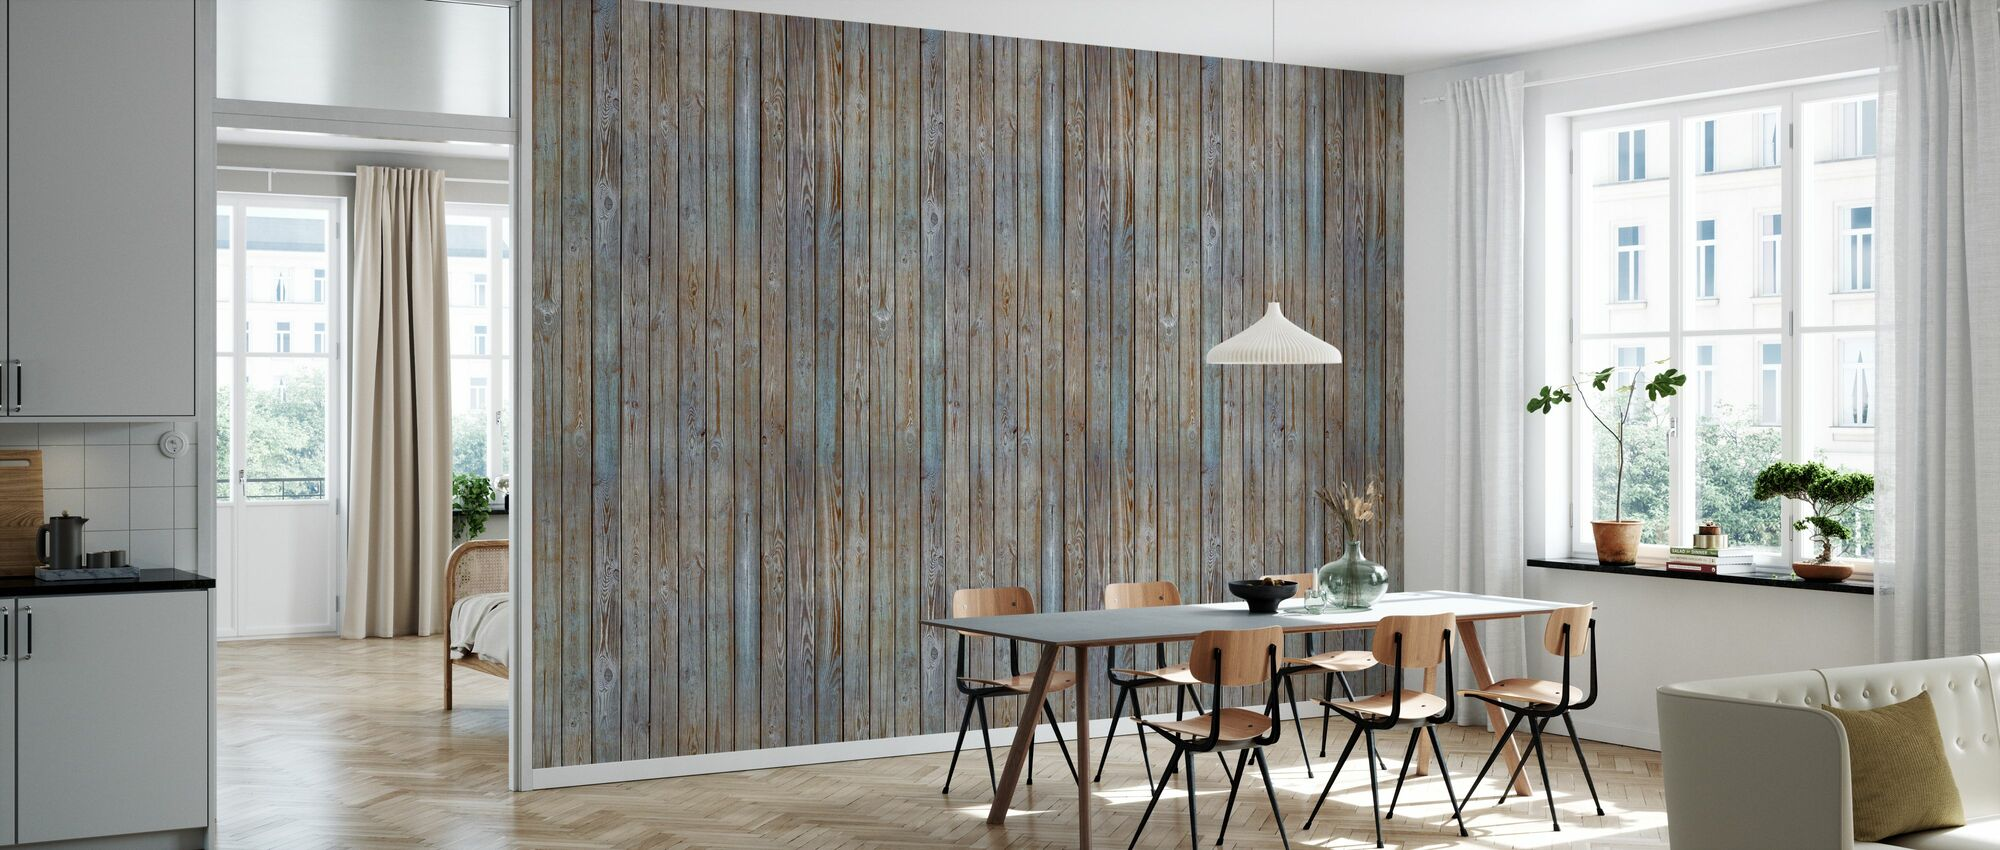 Wooden Plank Wall Old Silver Stylish High Quality Wallpaper With Fast Delivery Photowall